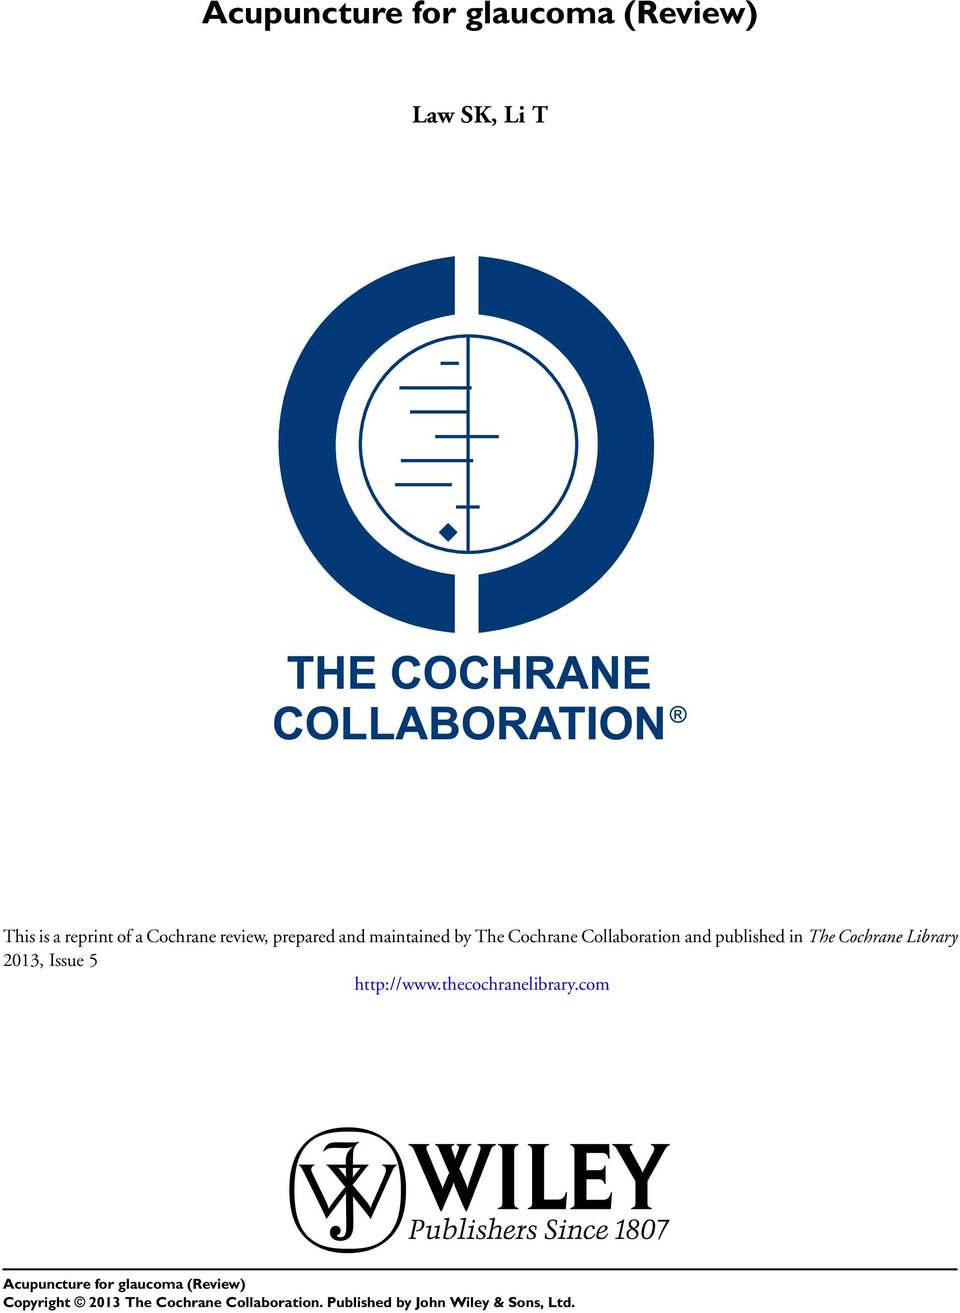 Collaboration and published in The Cochrane